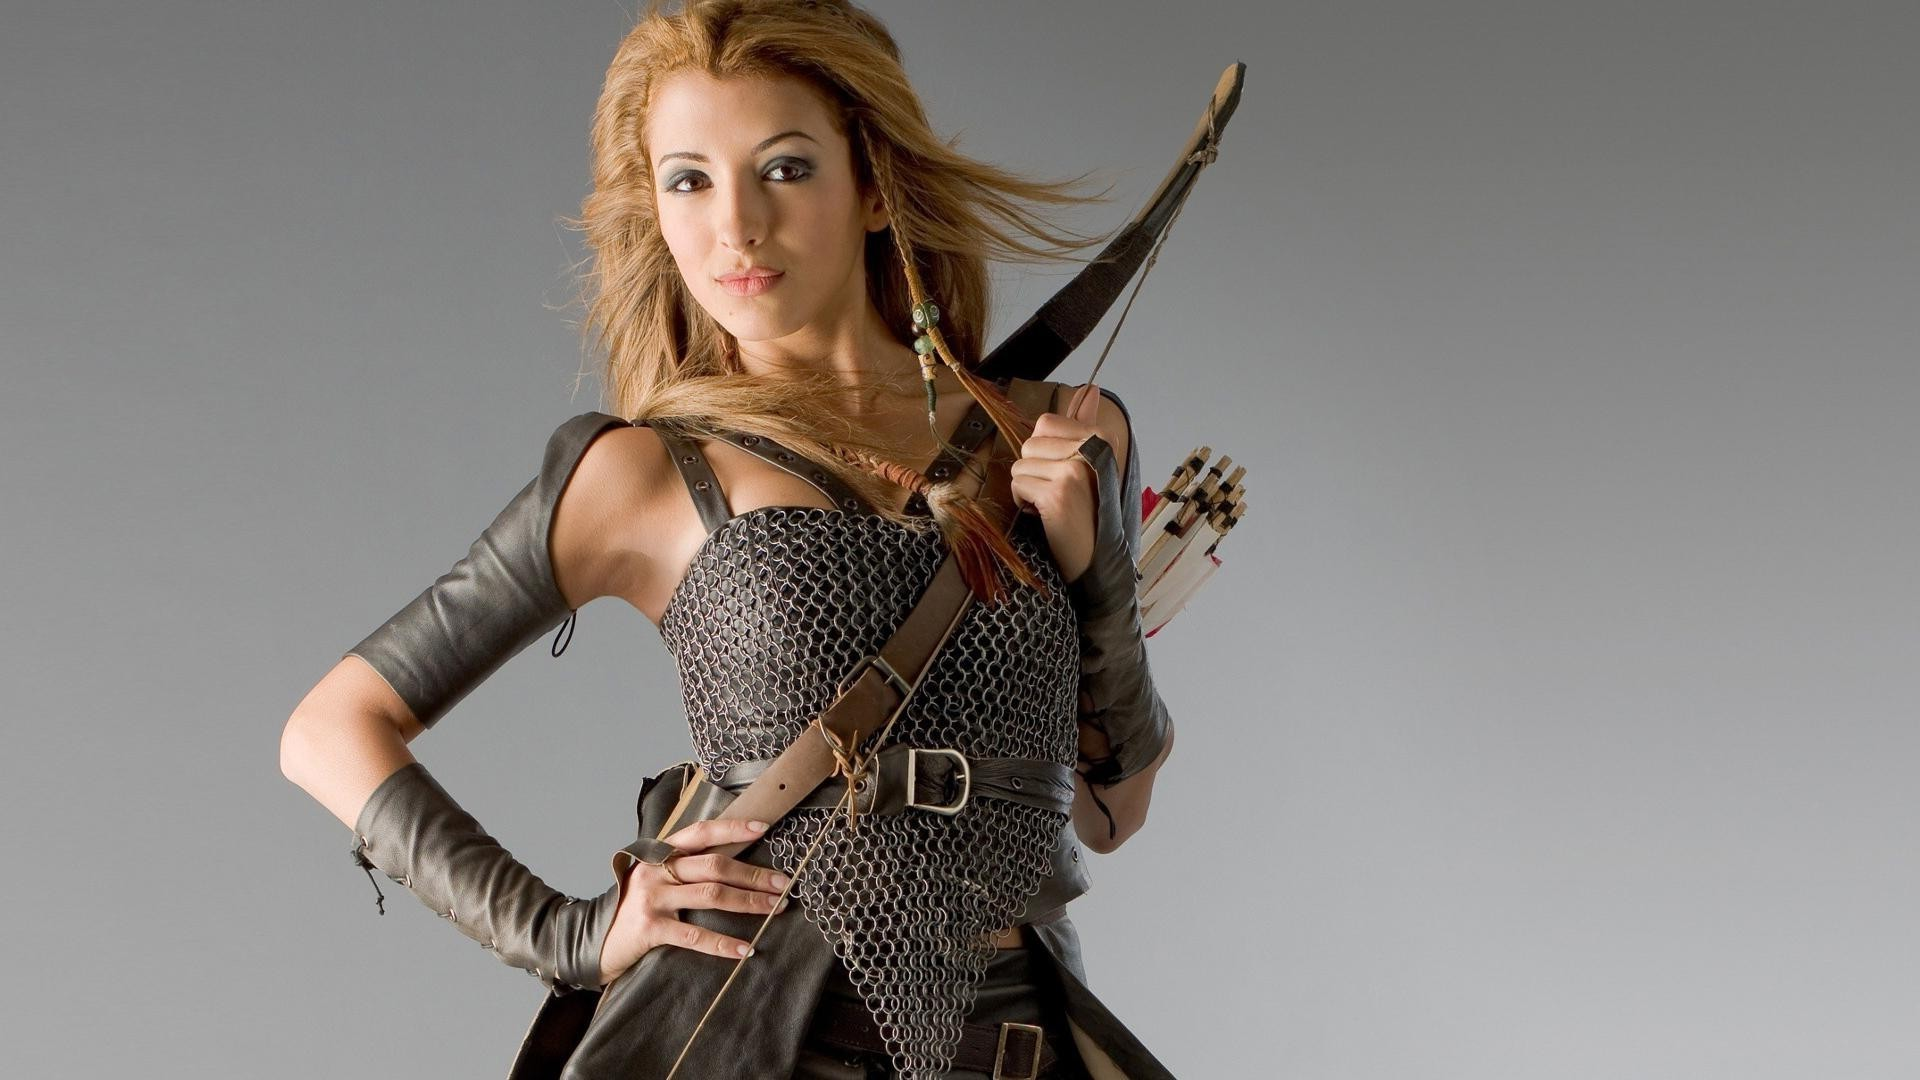 Hottie in chain mail with a bow